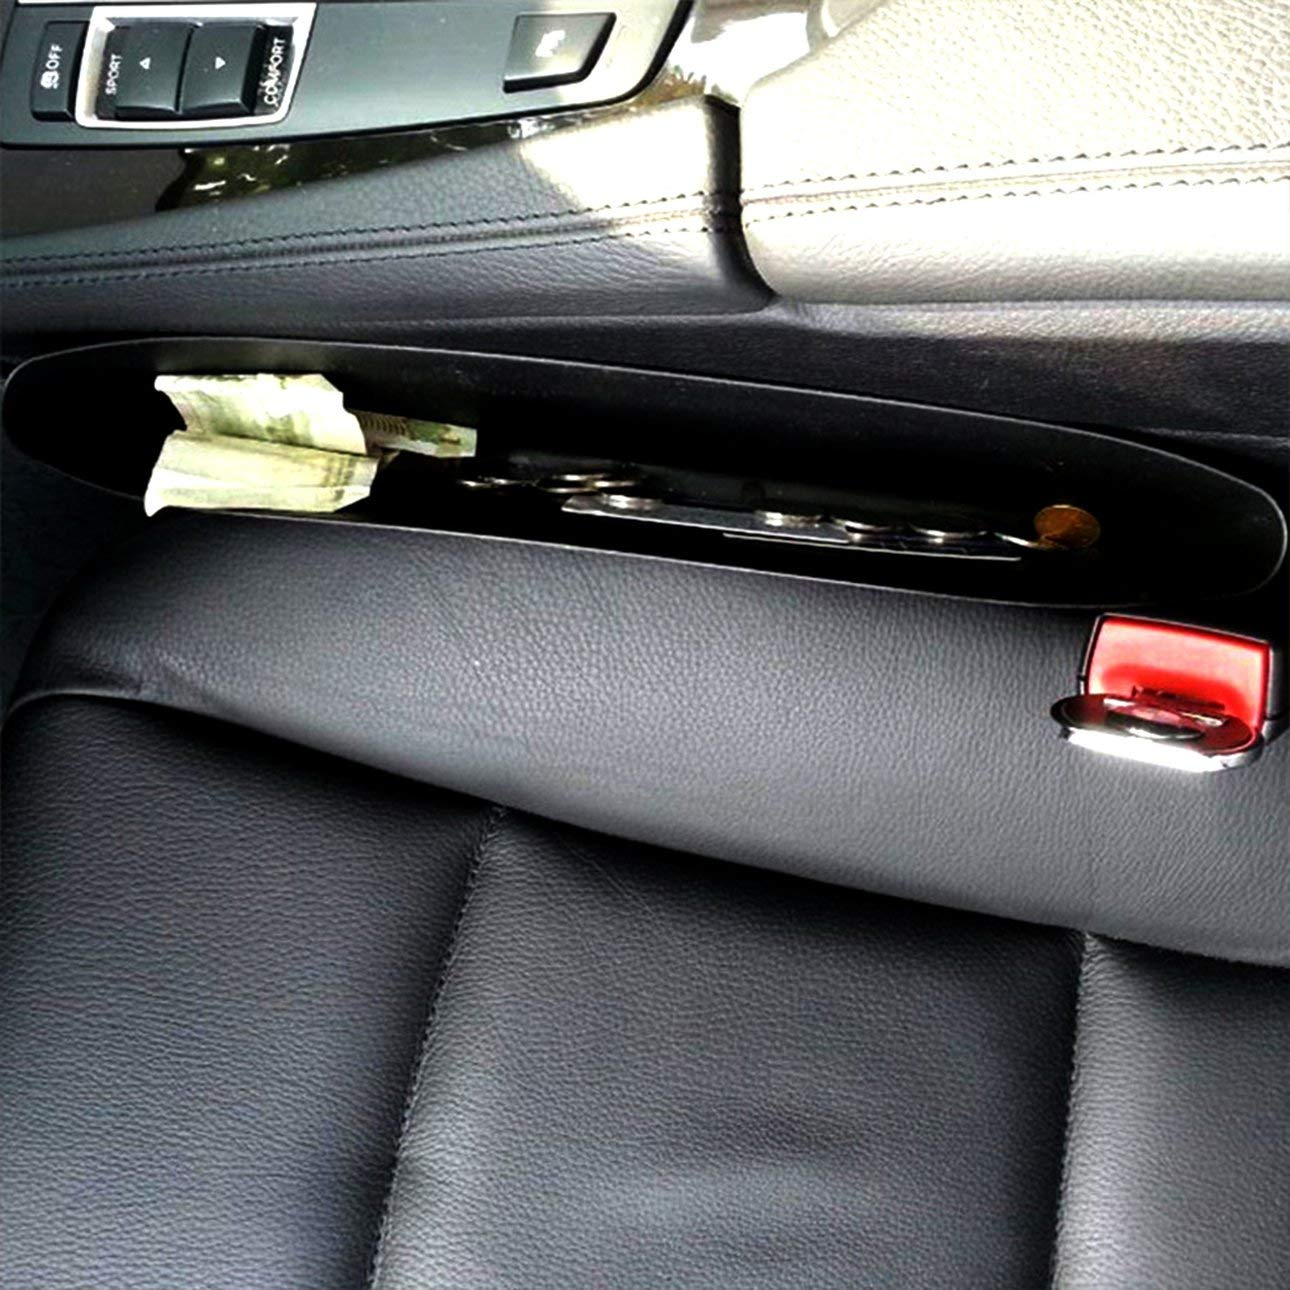 Migvela Black Car Storage Box Gap Filler Plastic Console Pocket Organizer Interior Accessories Car Seat Side Drop Caddy Catcher